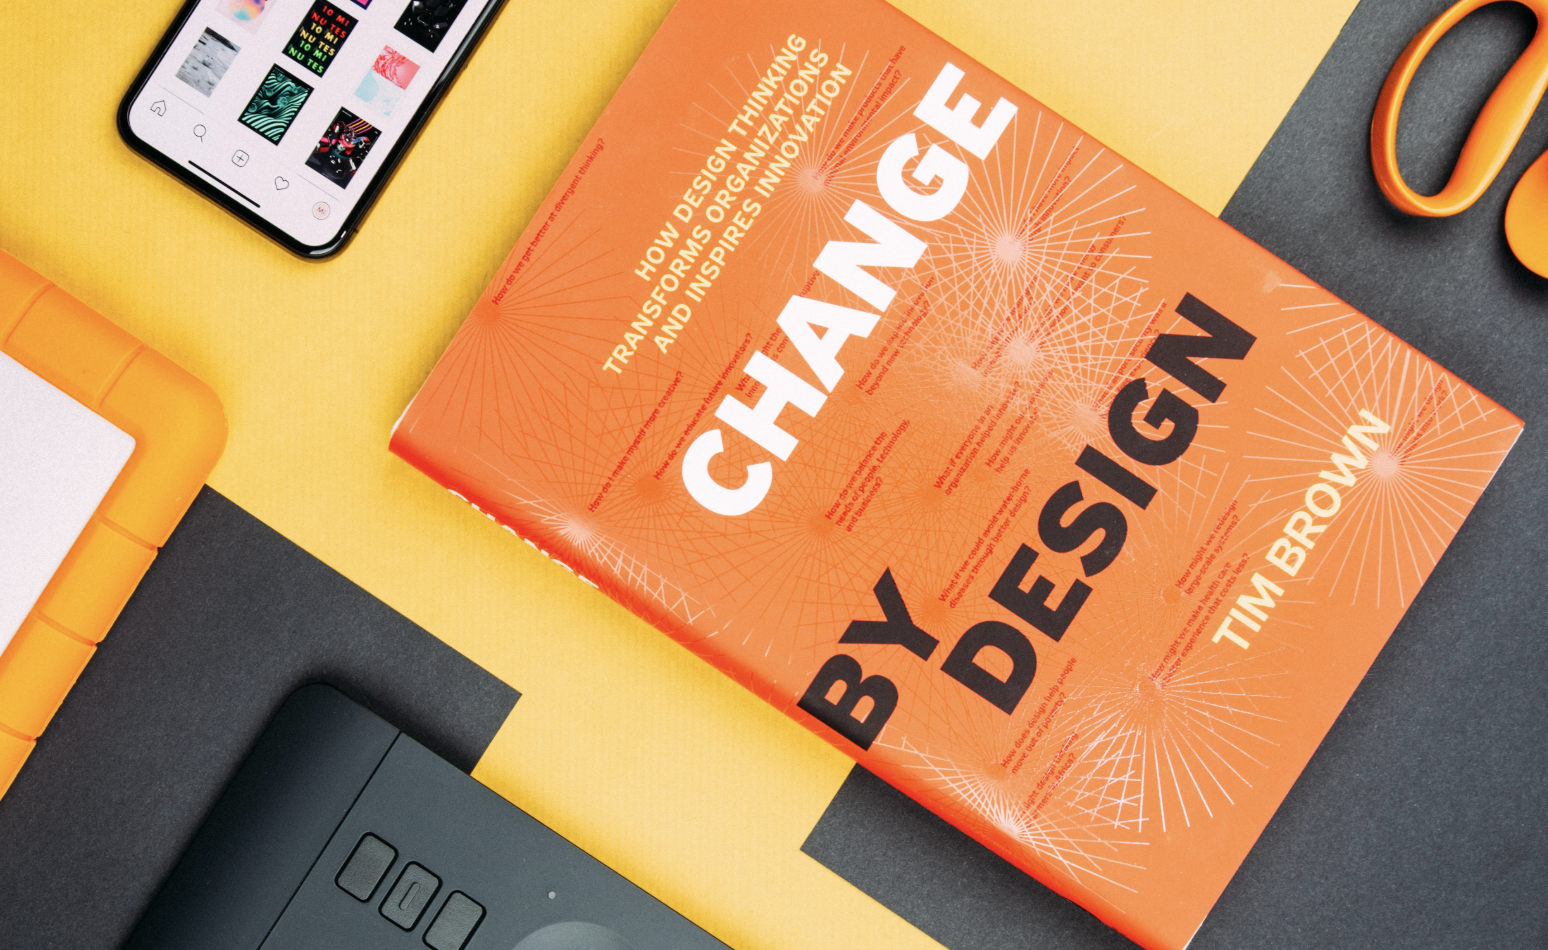 10 emerging design trends to look out for in 2020 [Infographic]